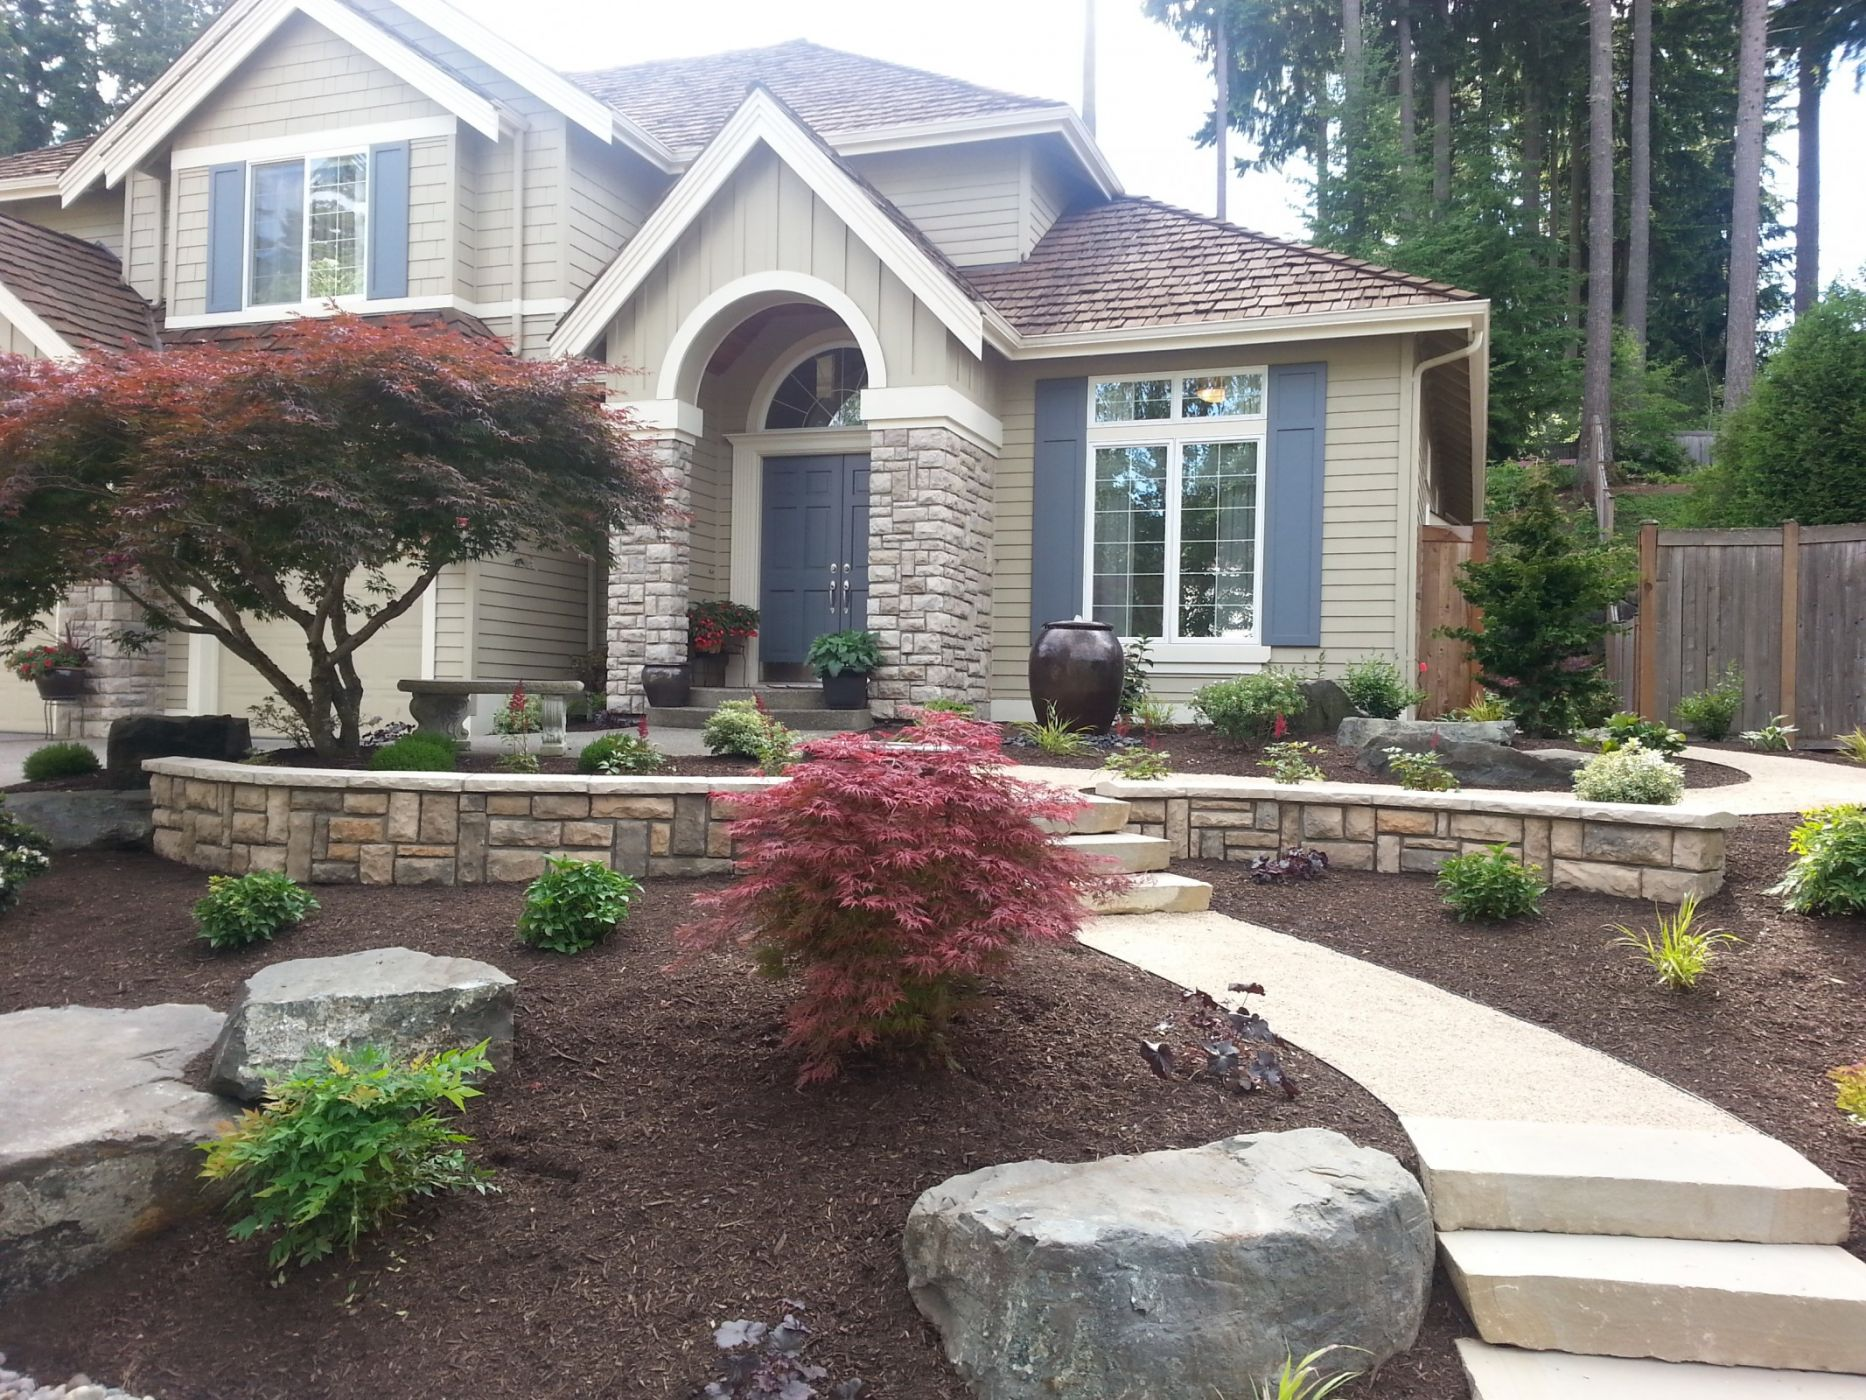 Landscaping Ideas For Front Yard Images : Janika landscaping ideas front yard illinois here